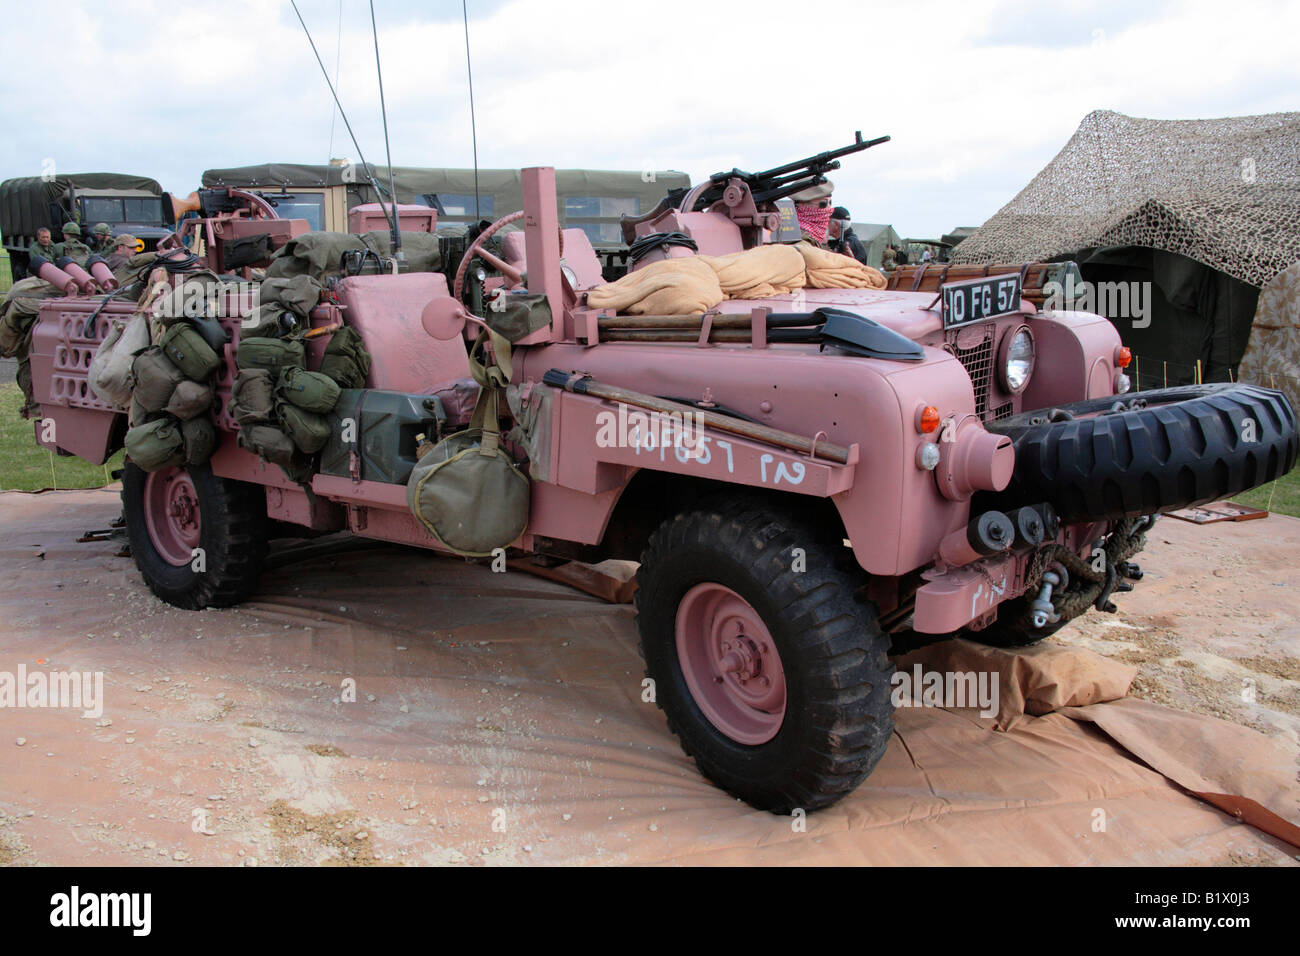 and pictures news panther sale landrover research for vehicle history sales value land range rover pink